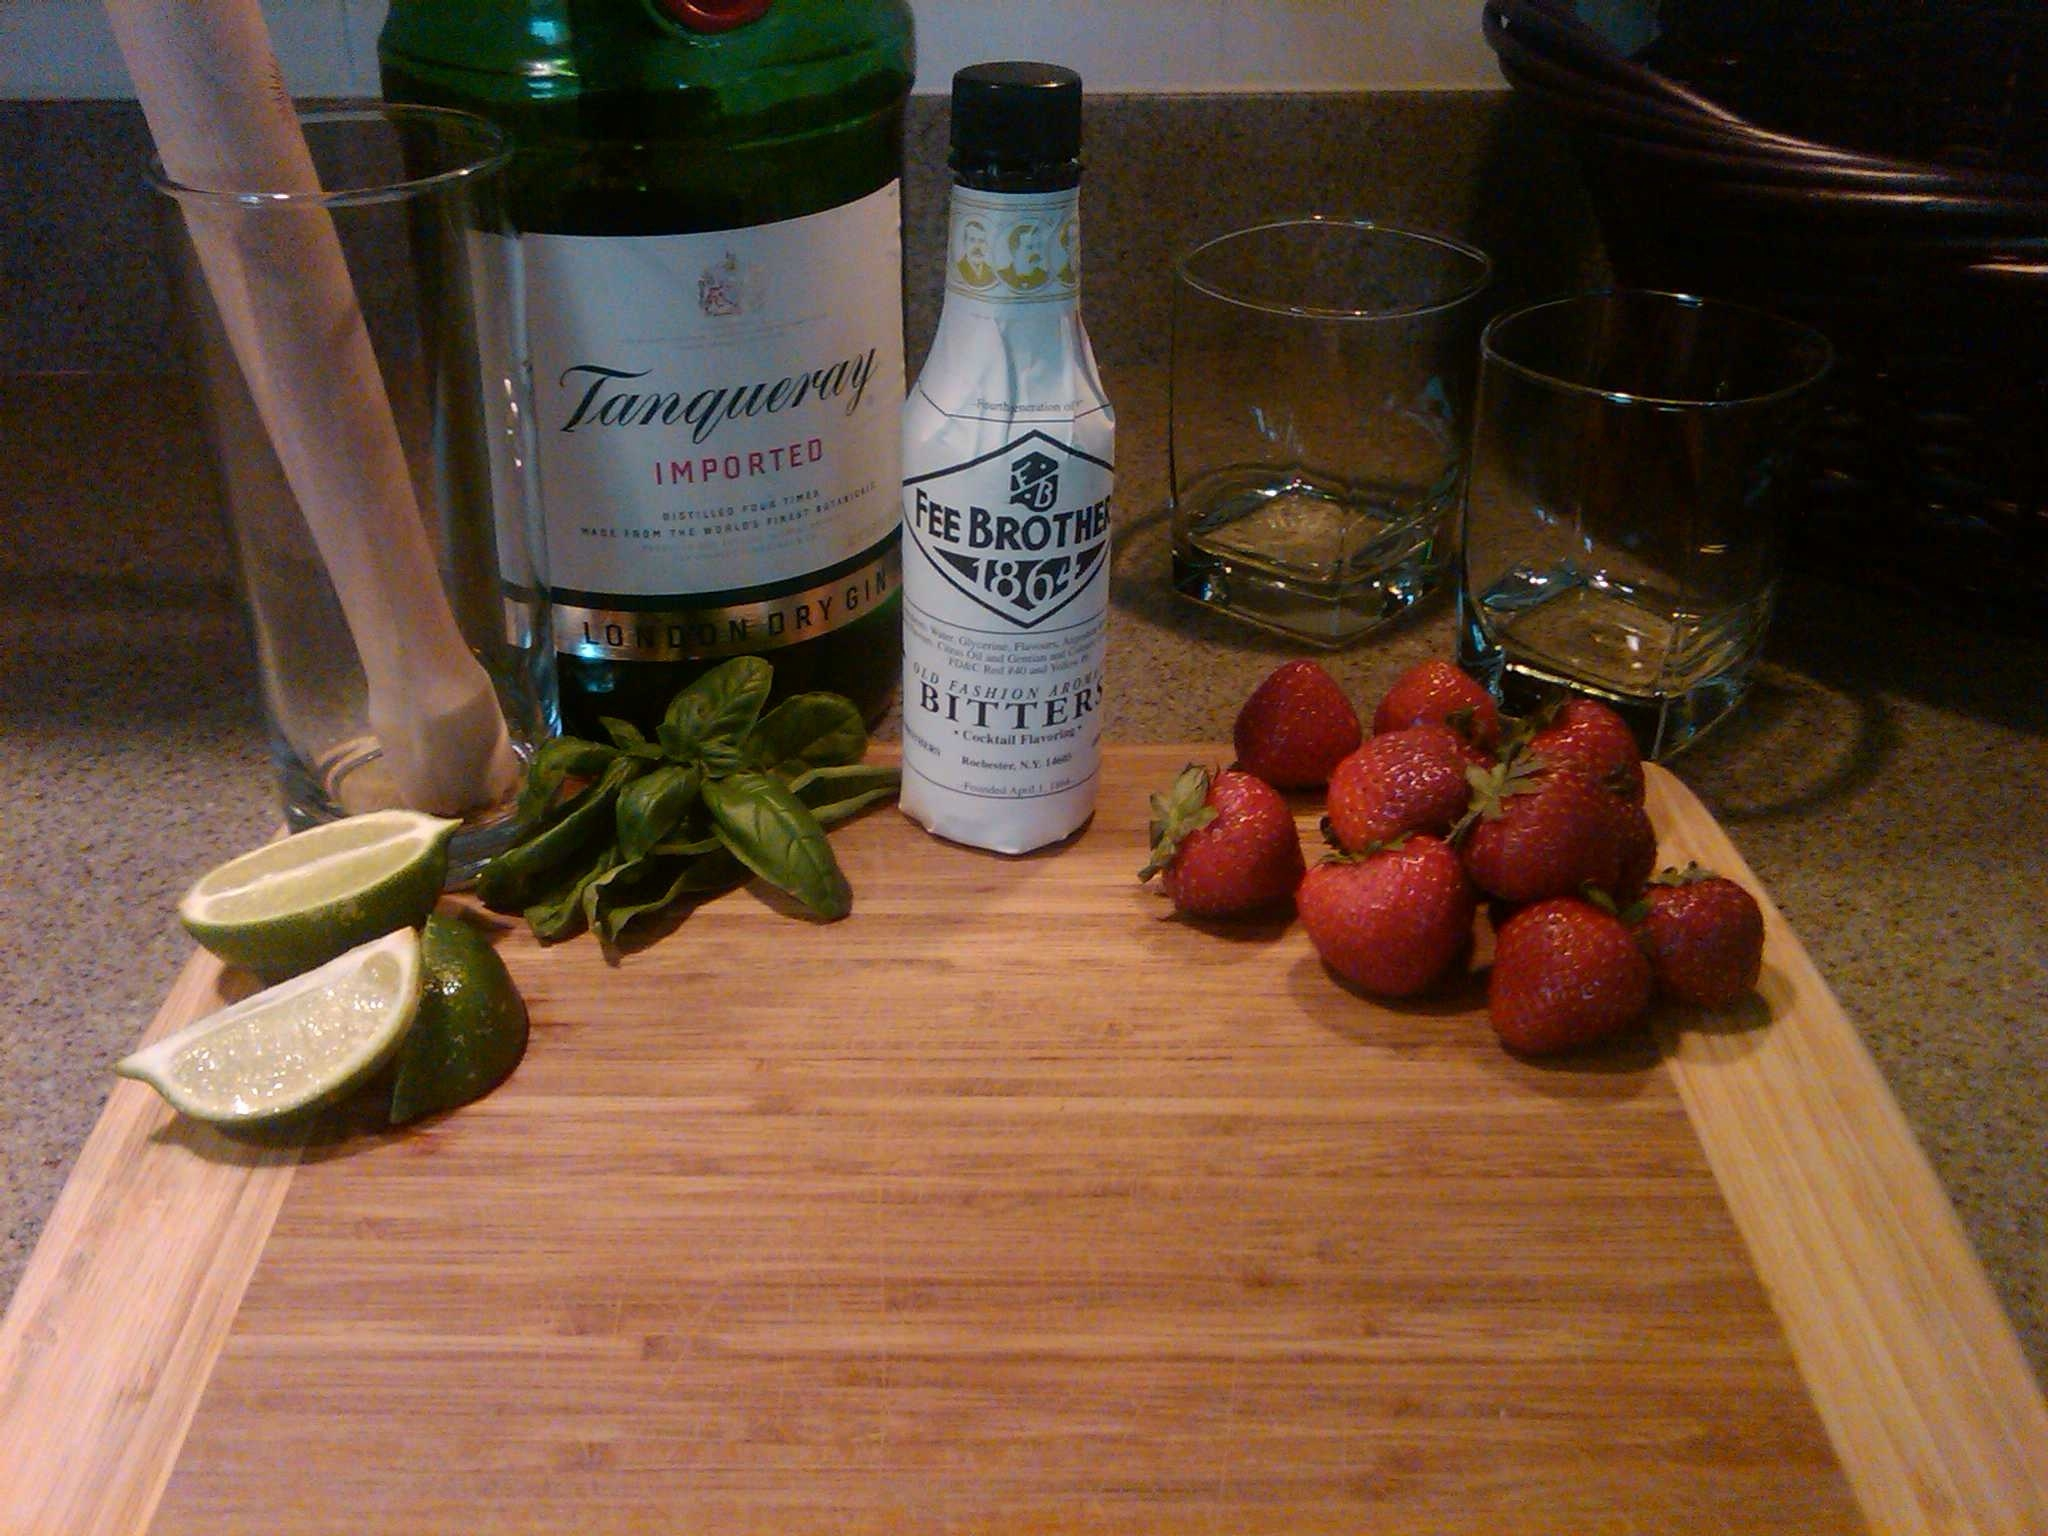 ingredients to make summer cocktail including Fee Brother's Bitters